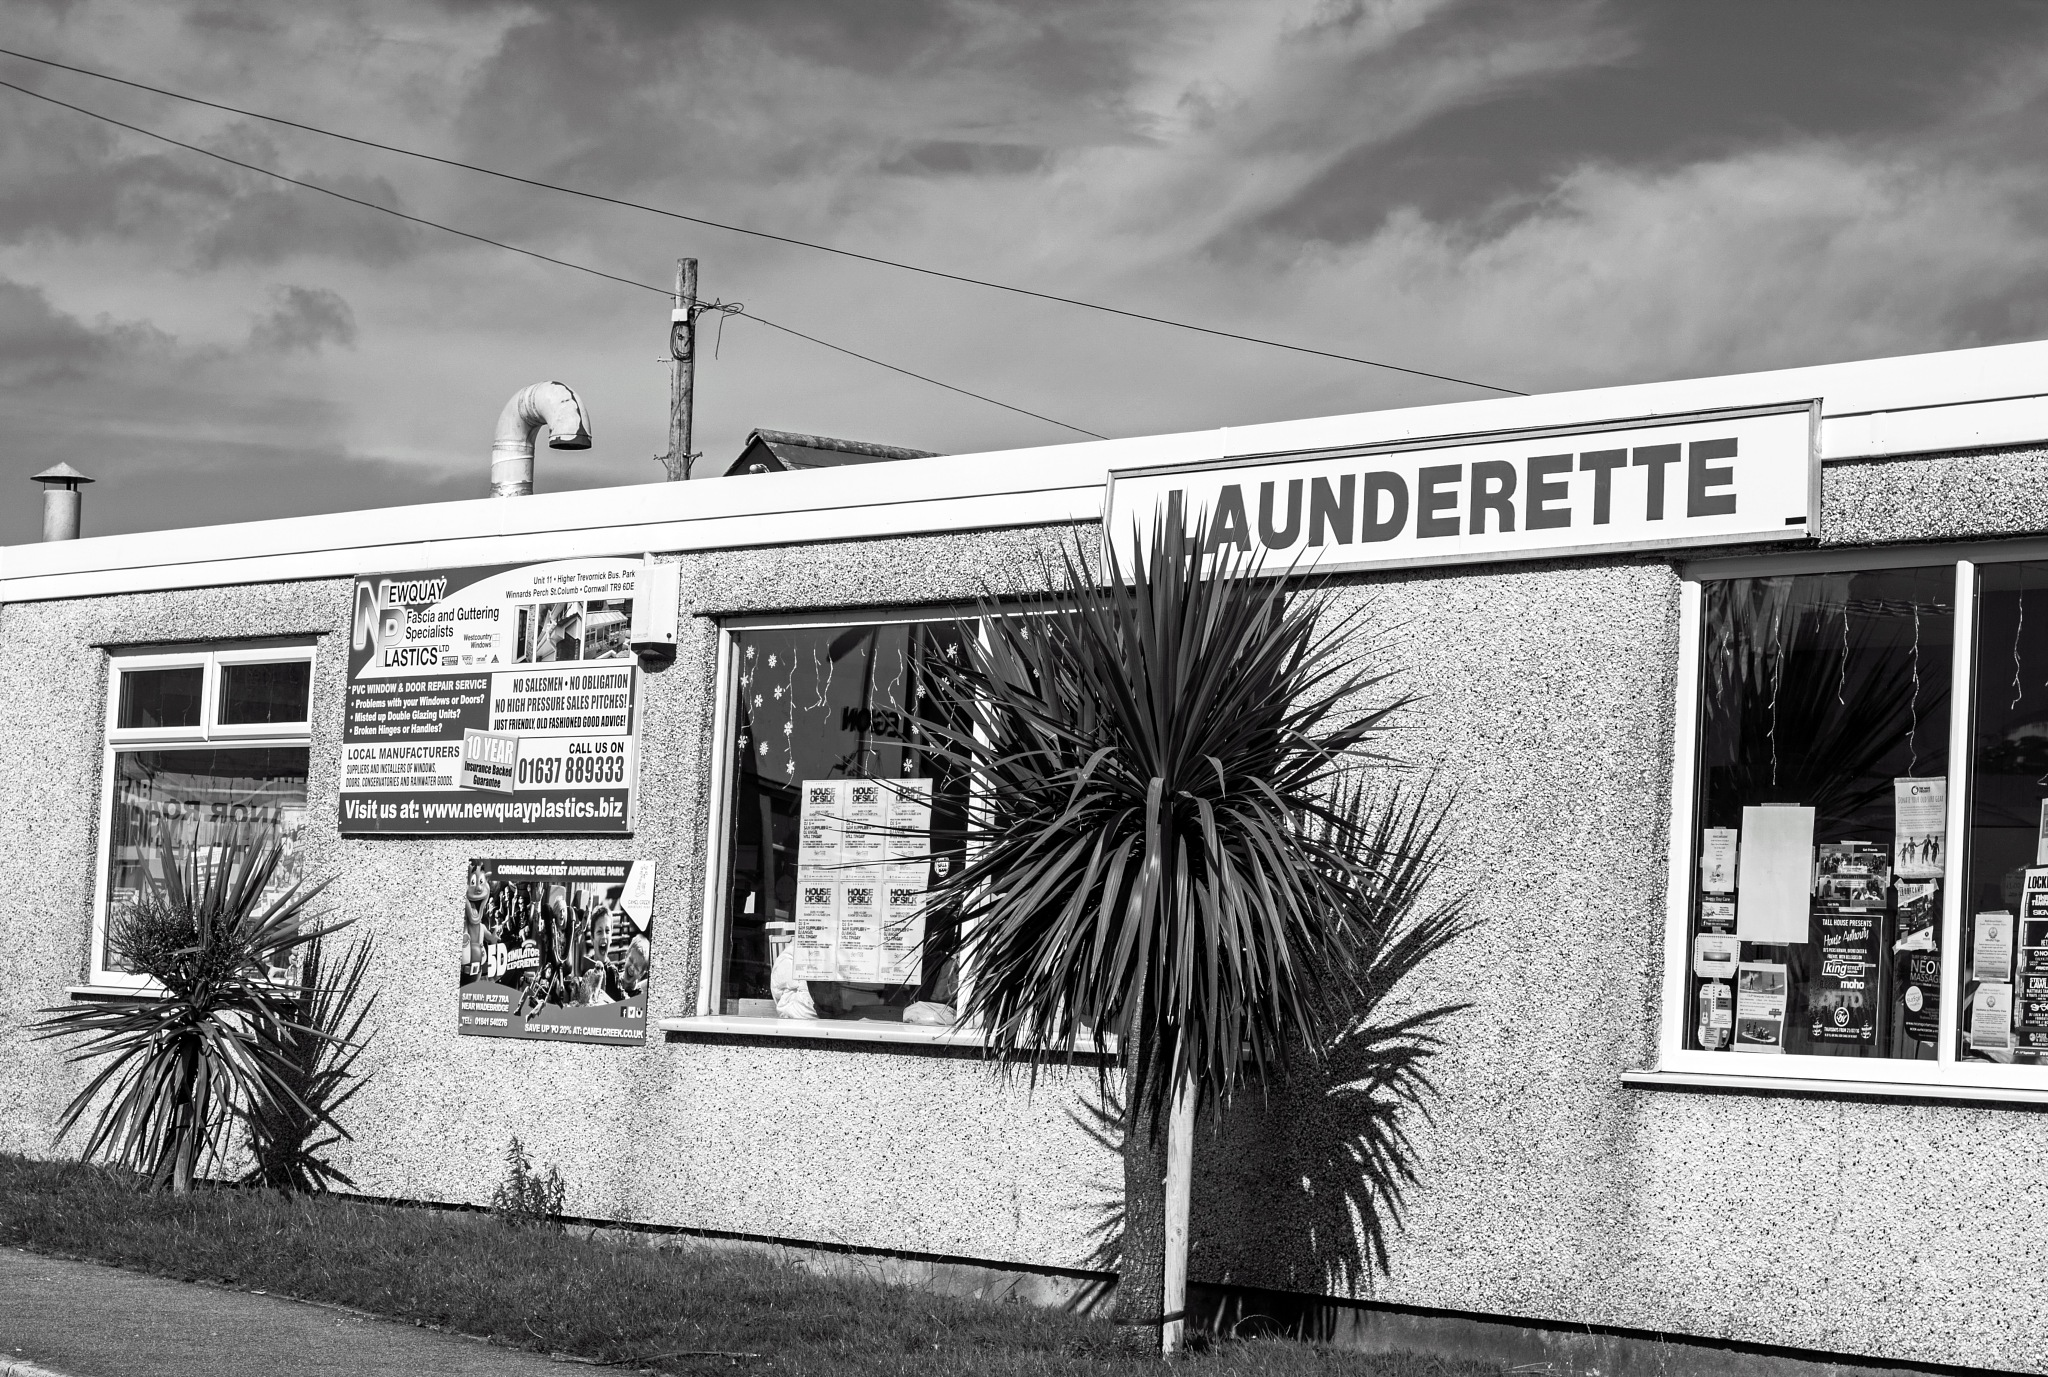 Launderette by MADOLDIE